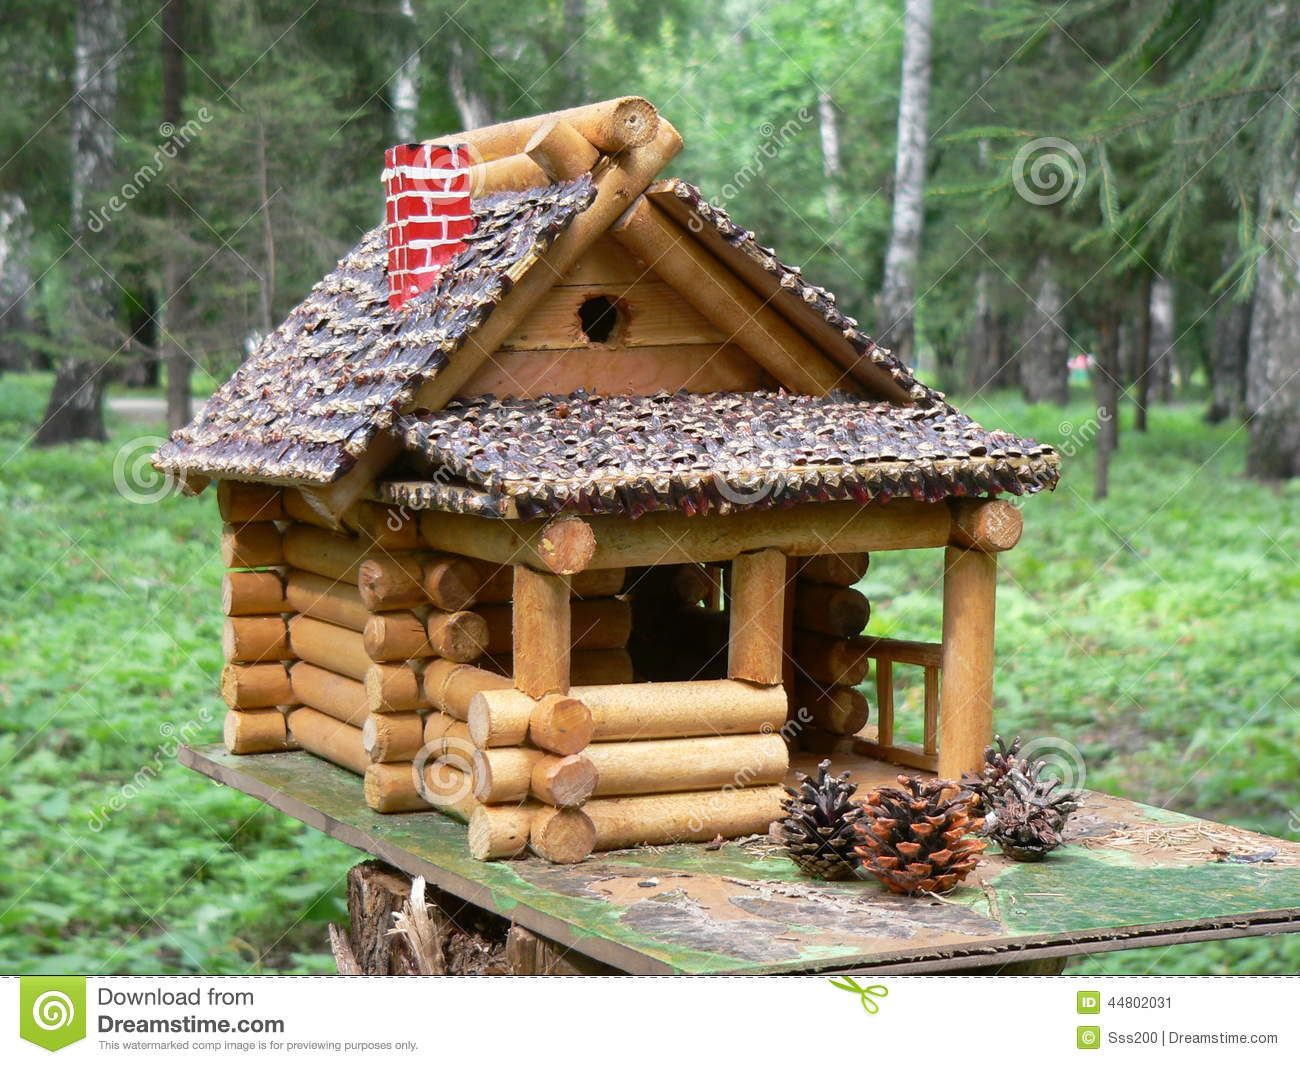 Window bird house plans - House In The Woods A Little House A Wooden Construction Forest Pine